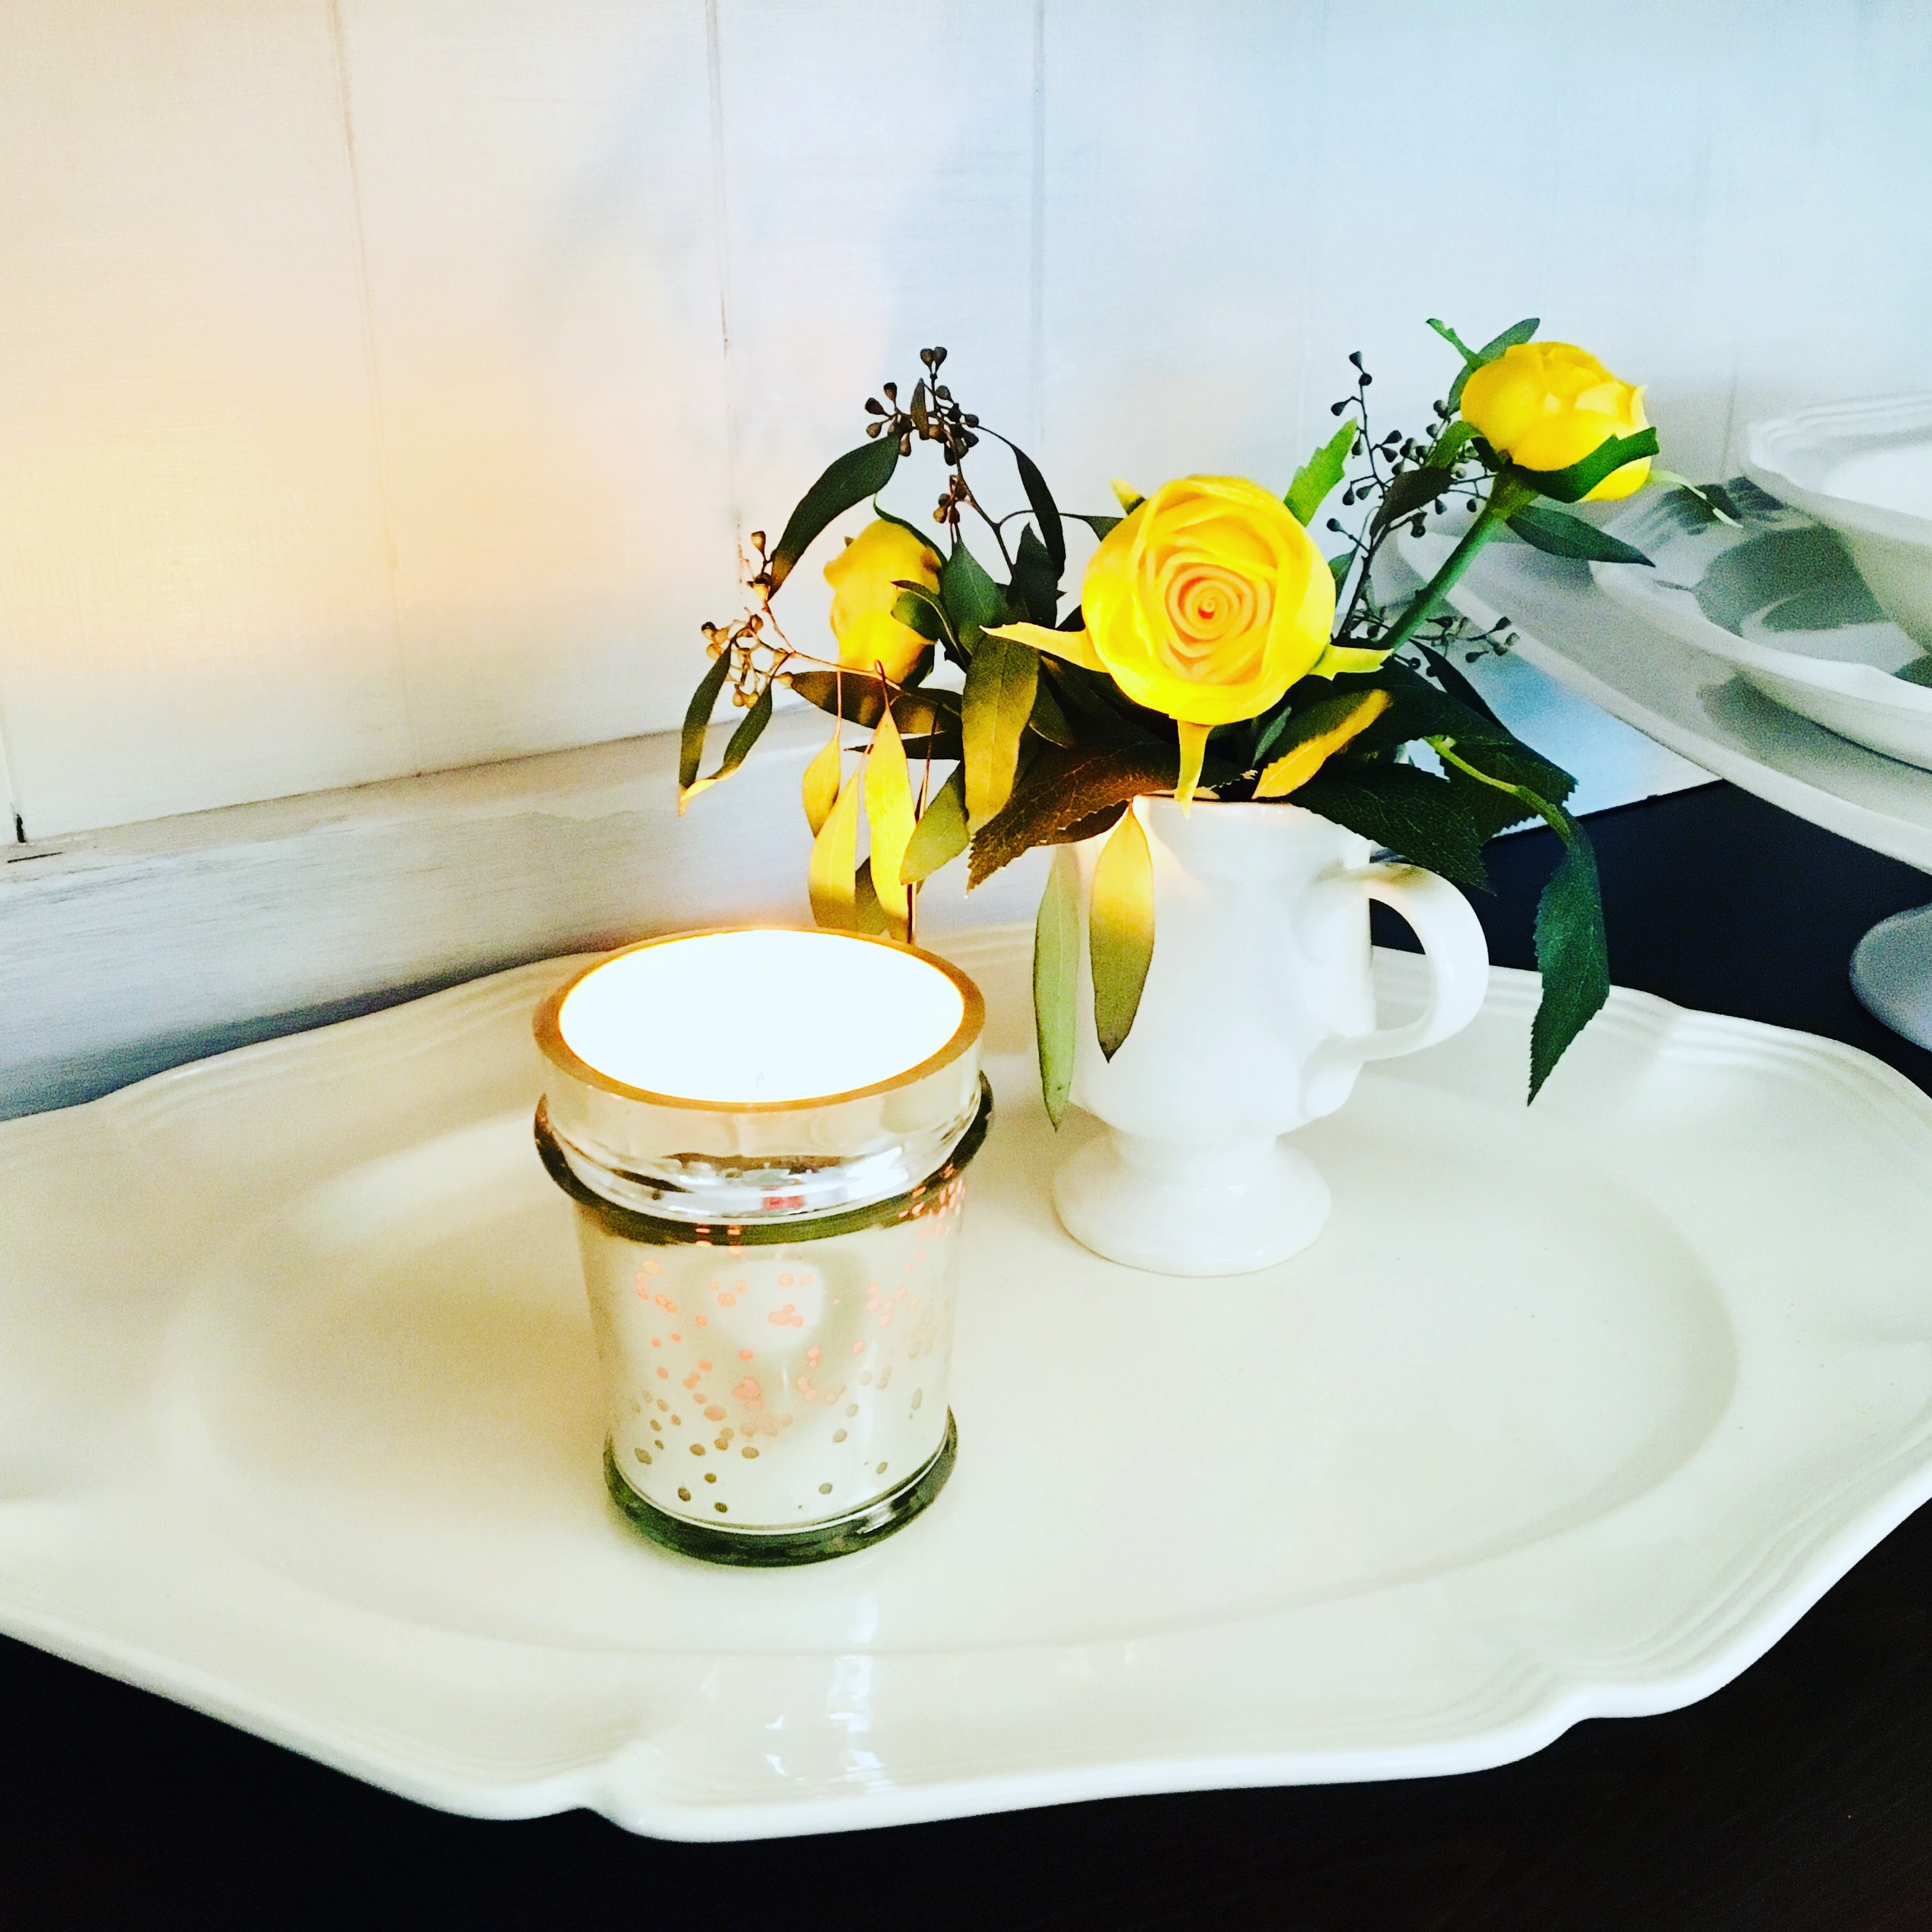 candle flowers platter Warmth to Your Home ourvintagehaven.com